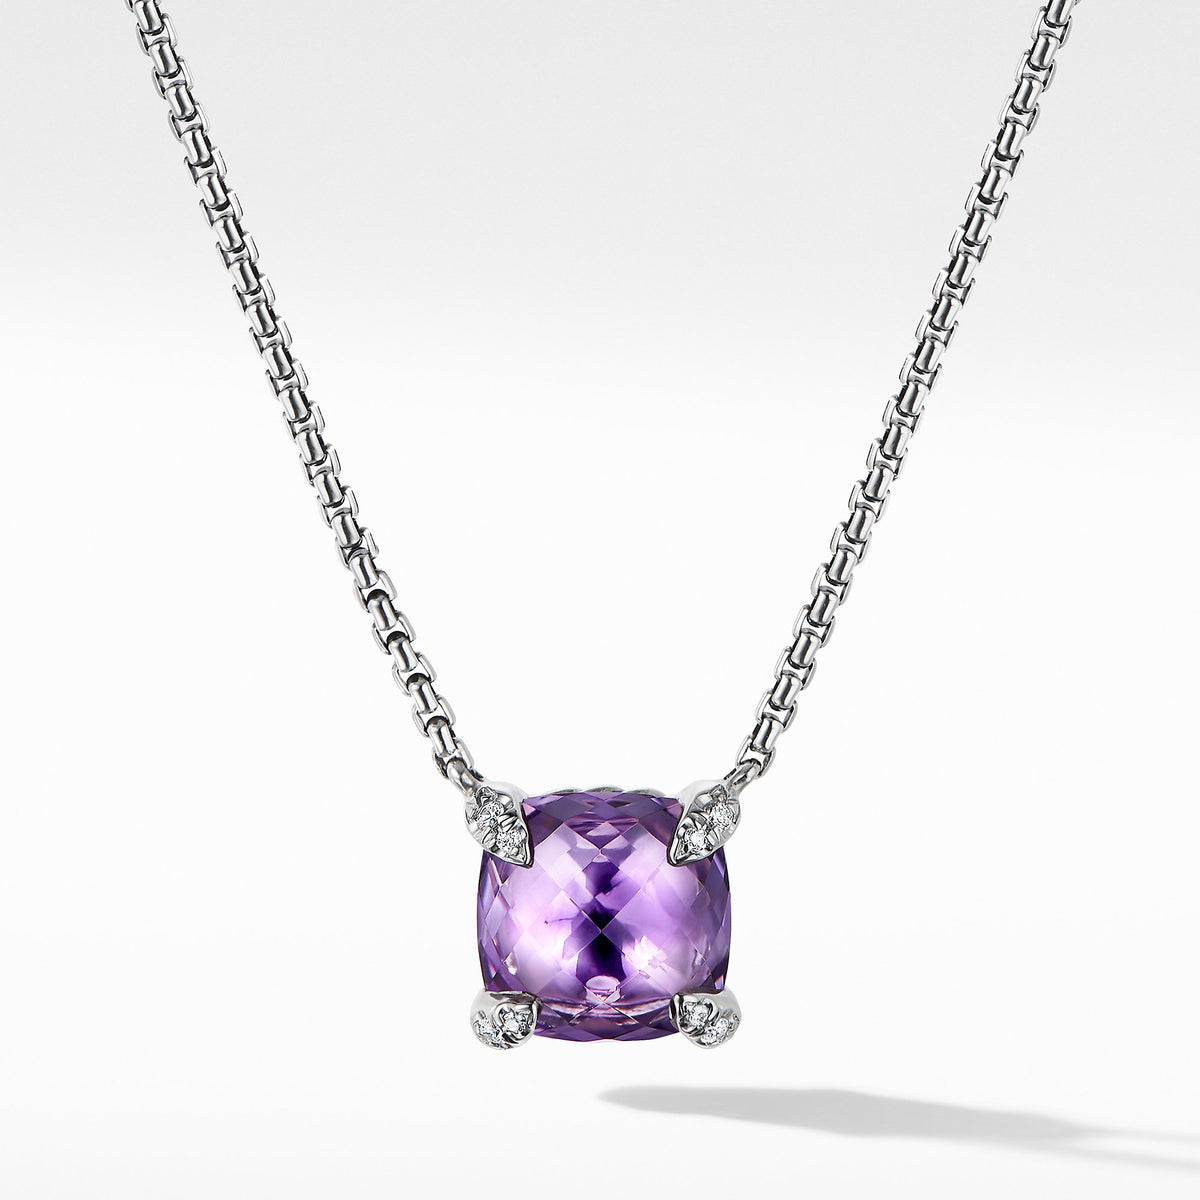 Chatelaine Pendant Necklace with Amethyst and Diamonds